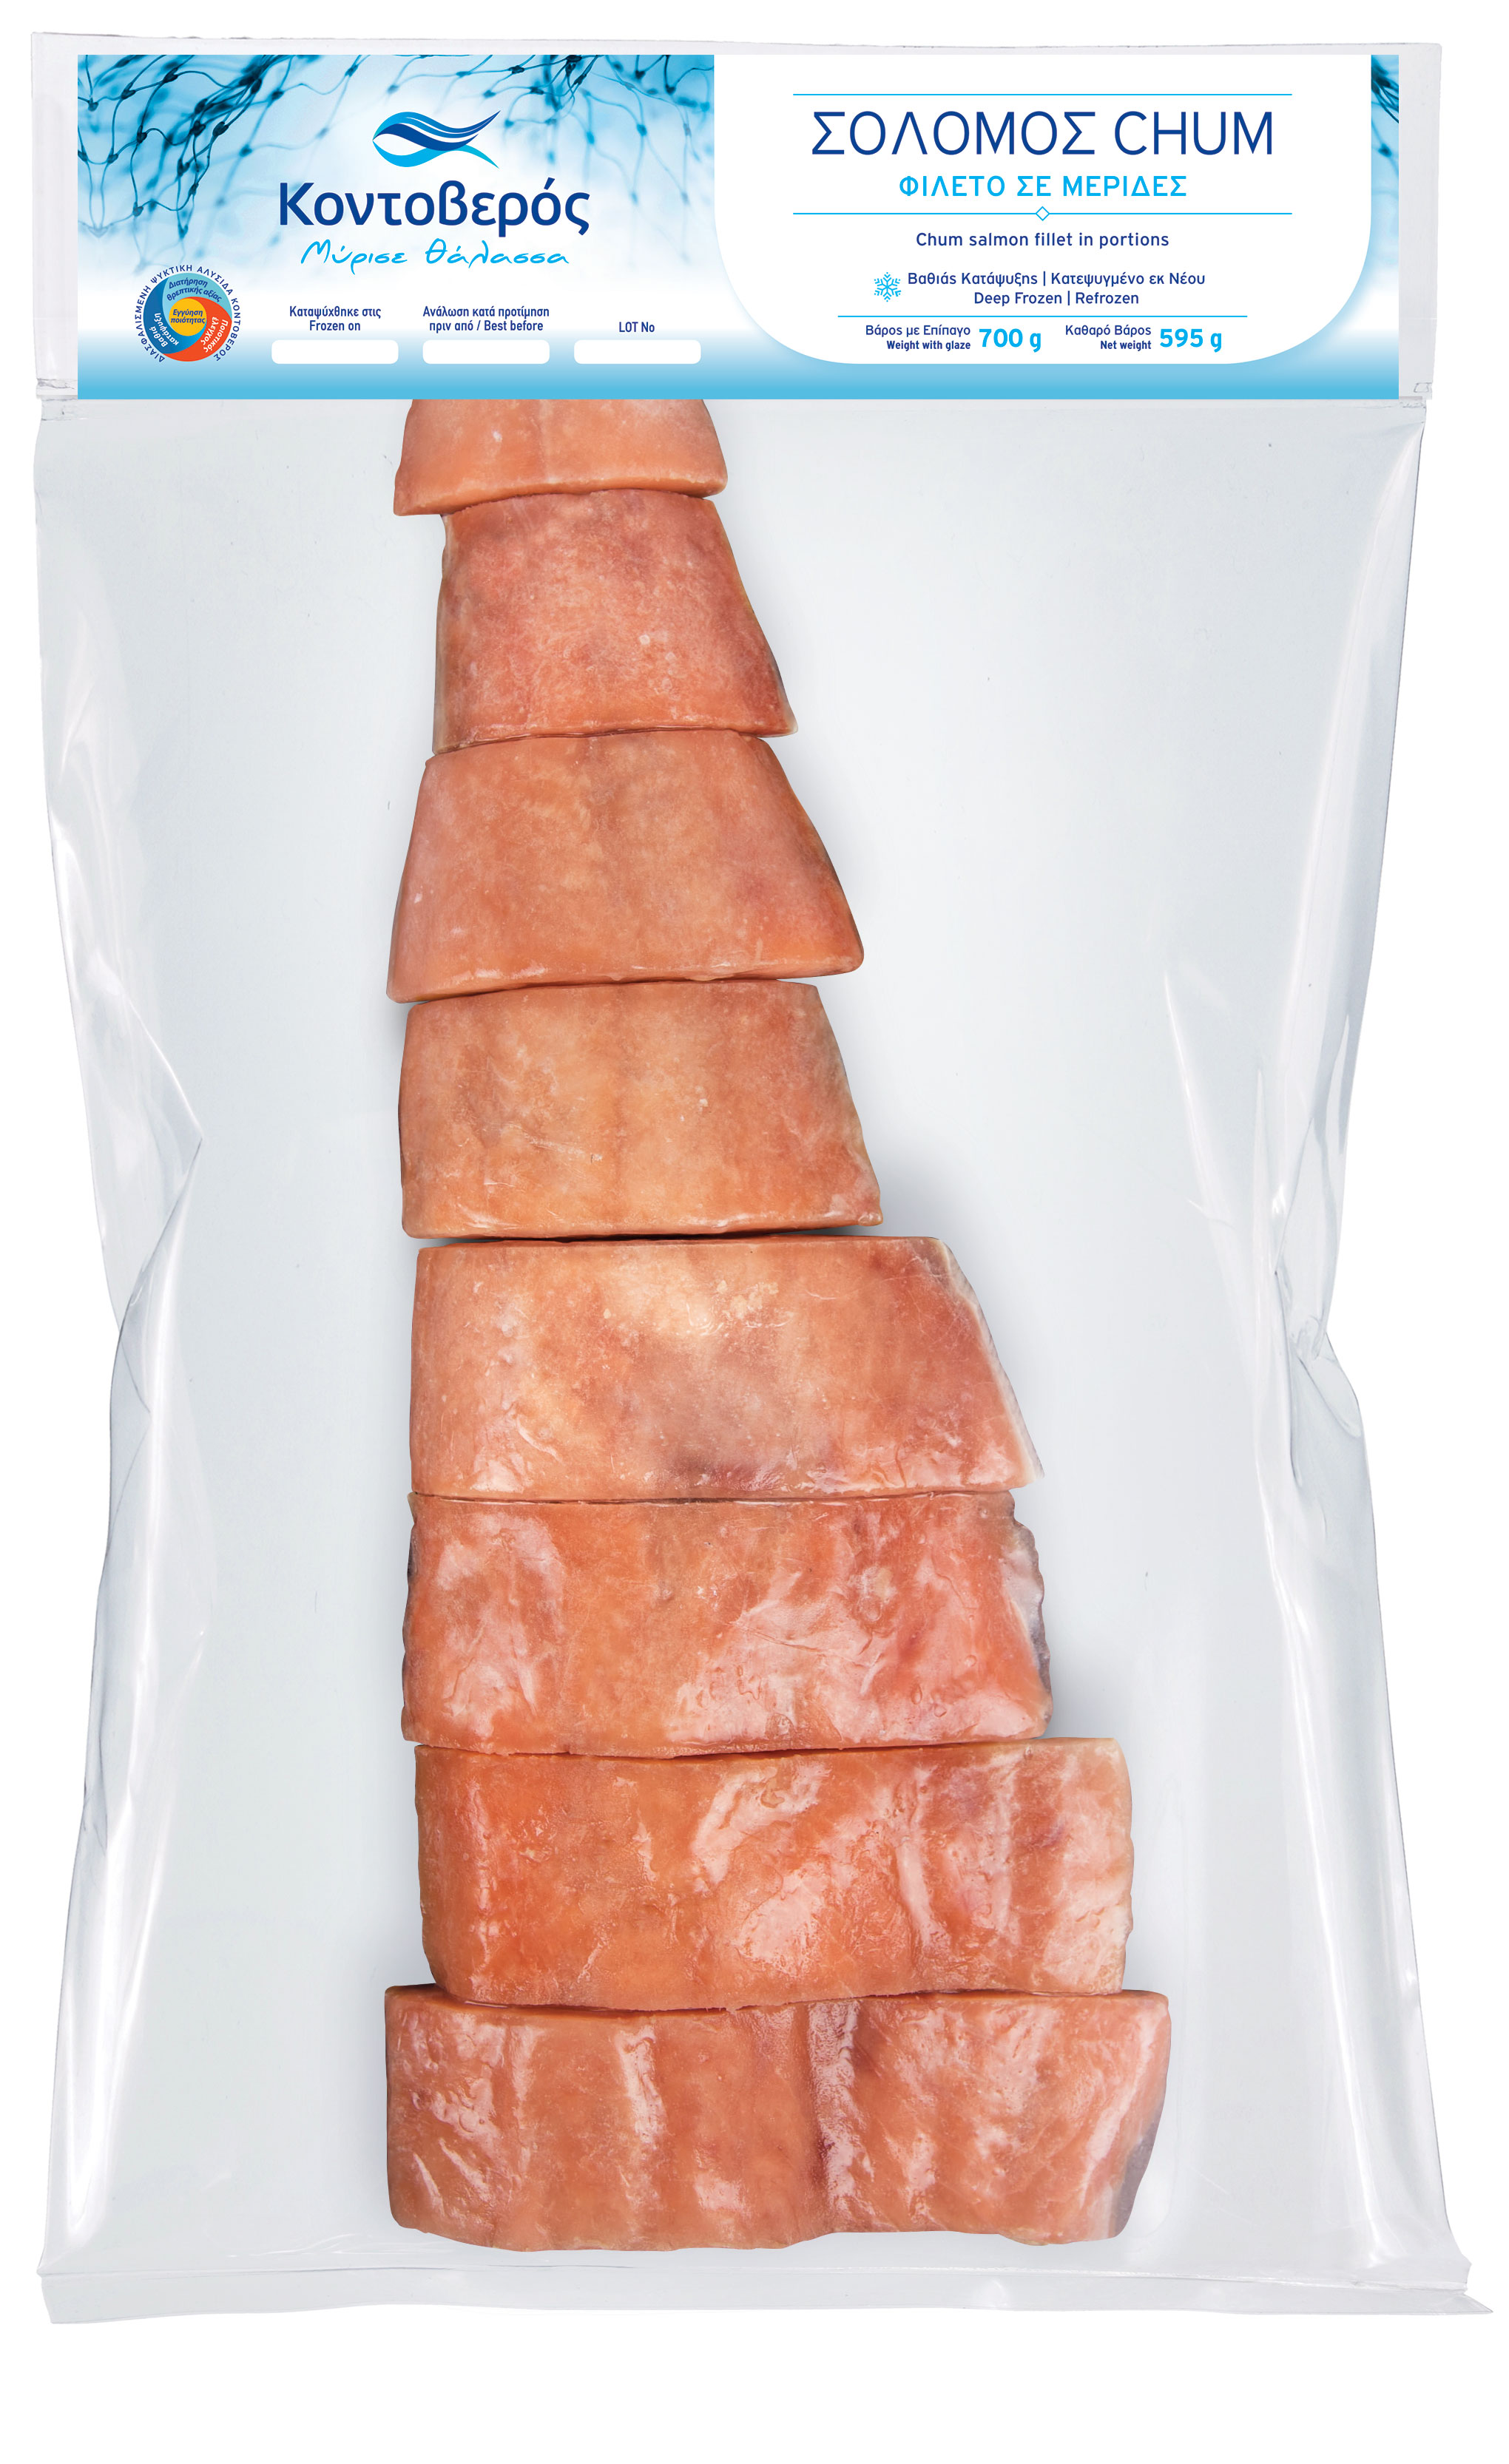 CHUM SALMON FILLETS IN PORTIONS (700g) Vacuum pack